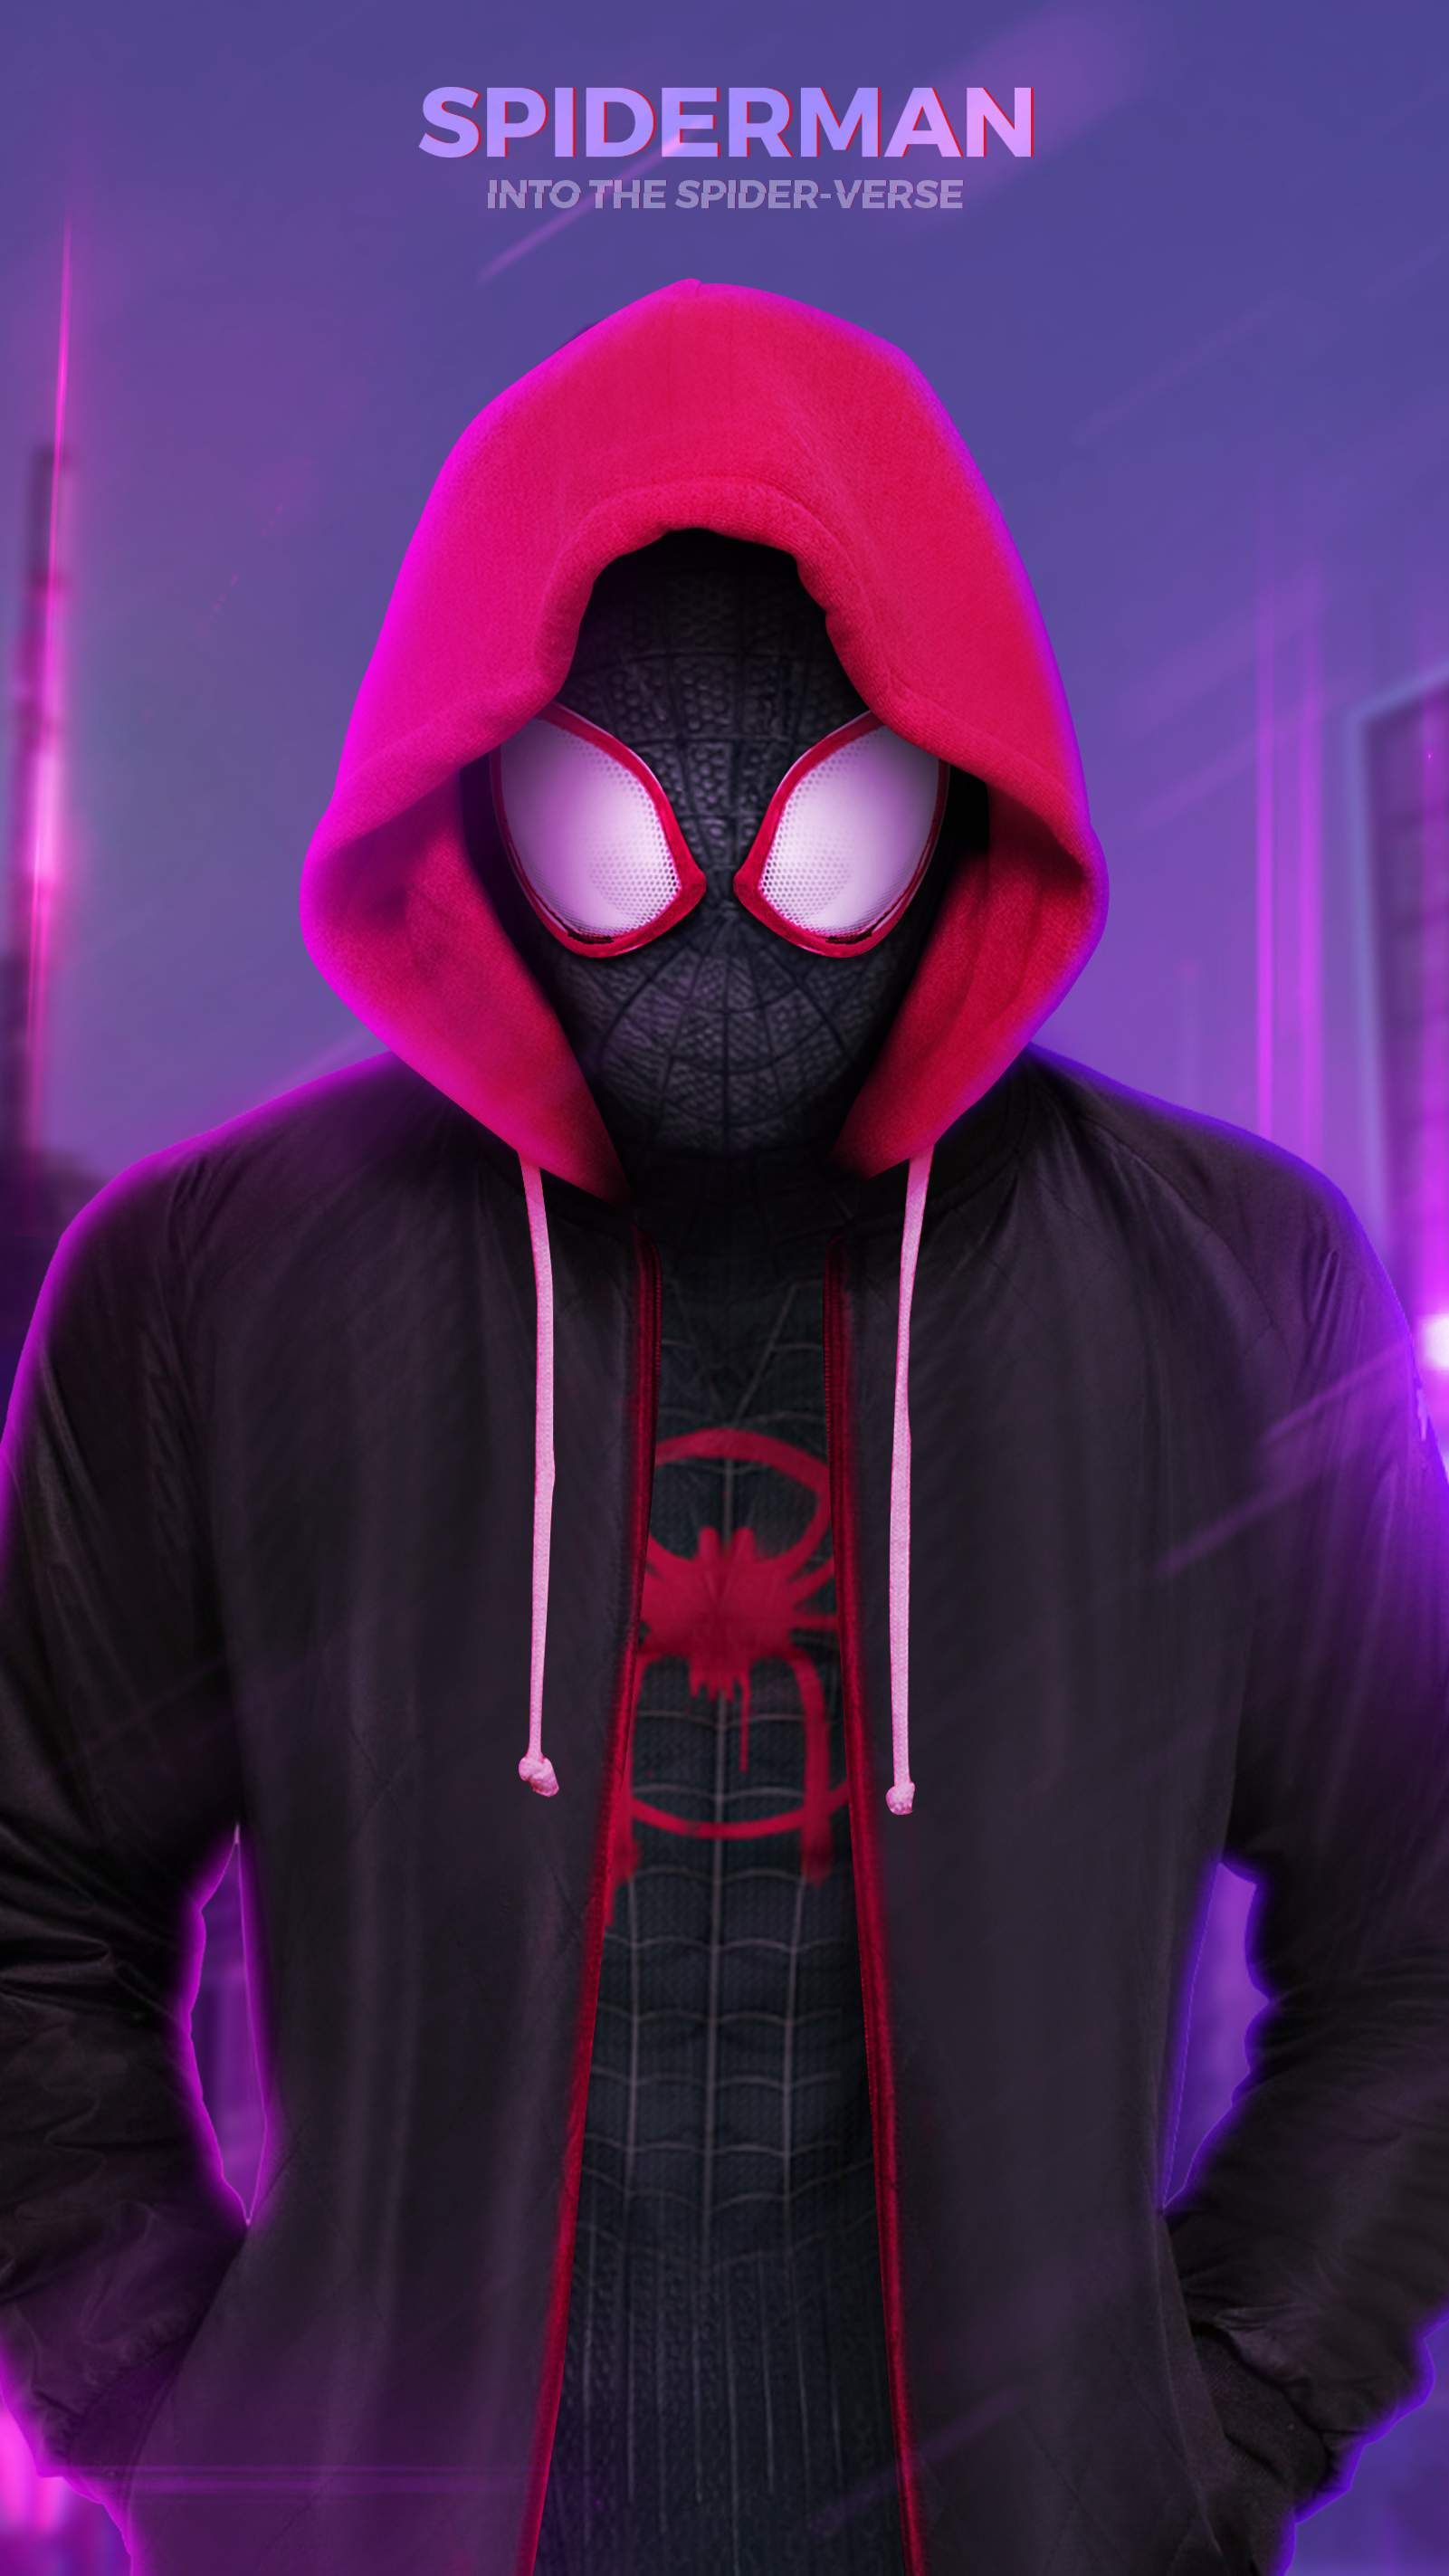 Spiderman Into The Spider Verse Iphone Wallpaper Spiderman Black Spiderman Spiderman Poster